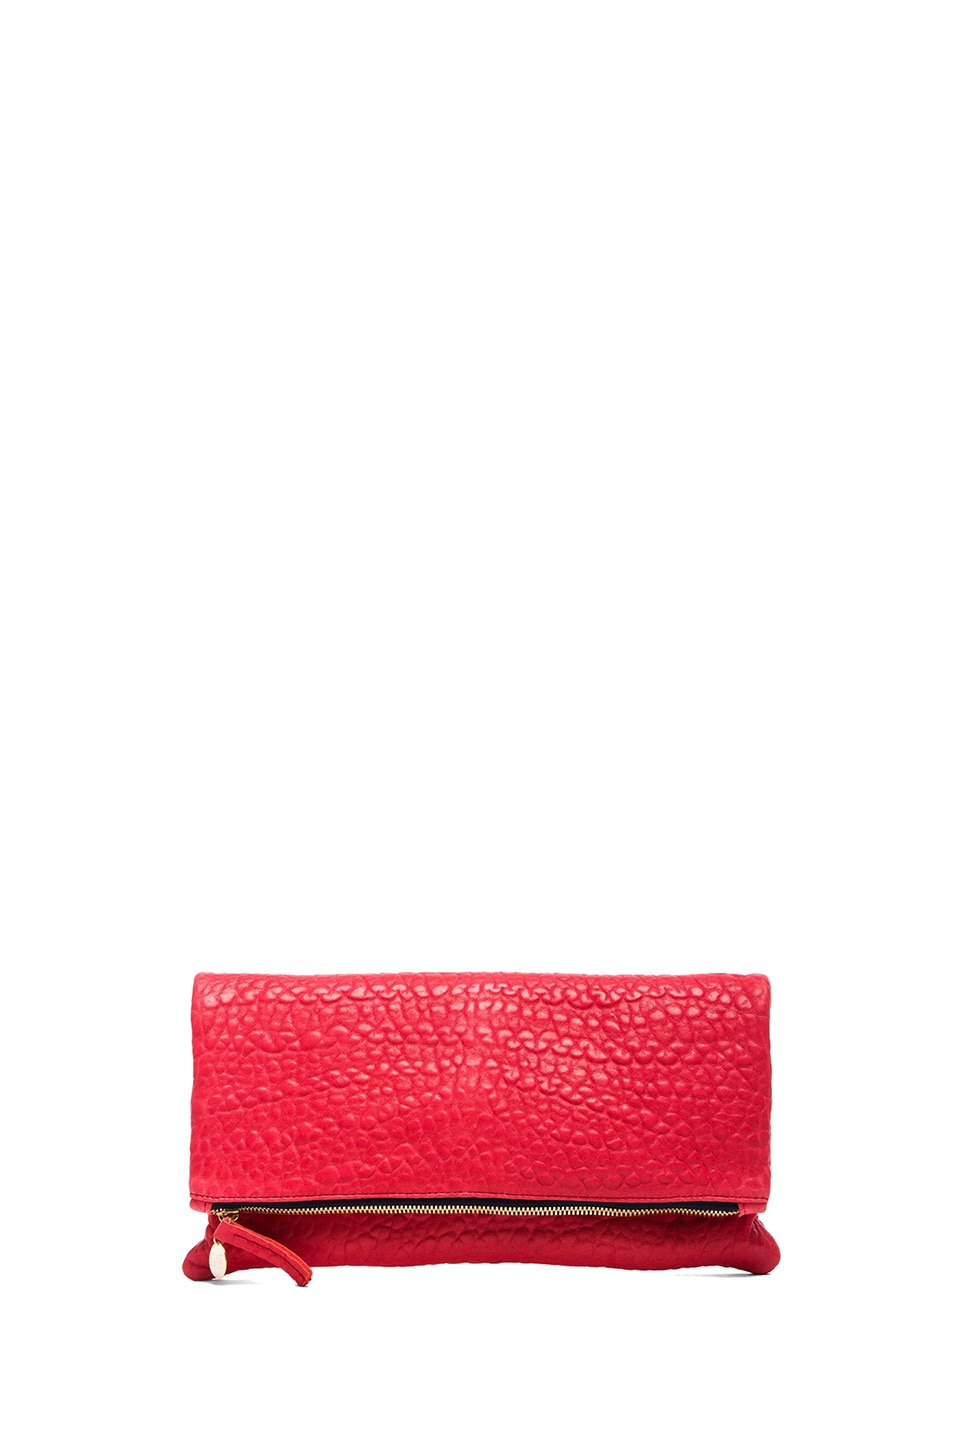 Clare V. Foldover Clutch in Pebbled Red